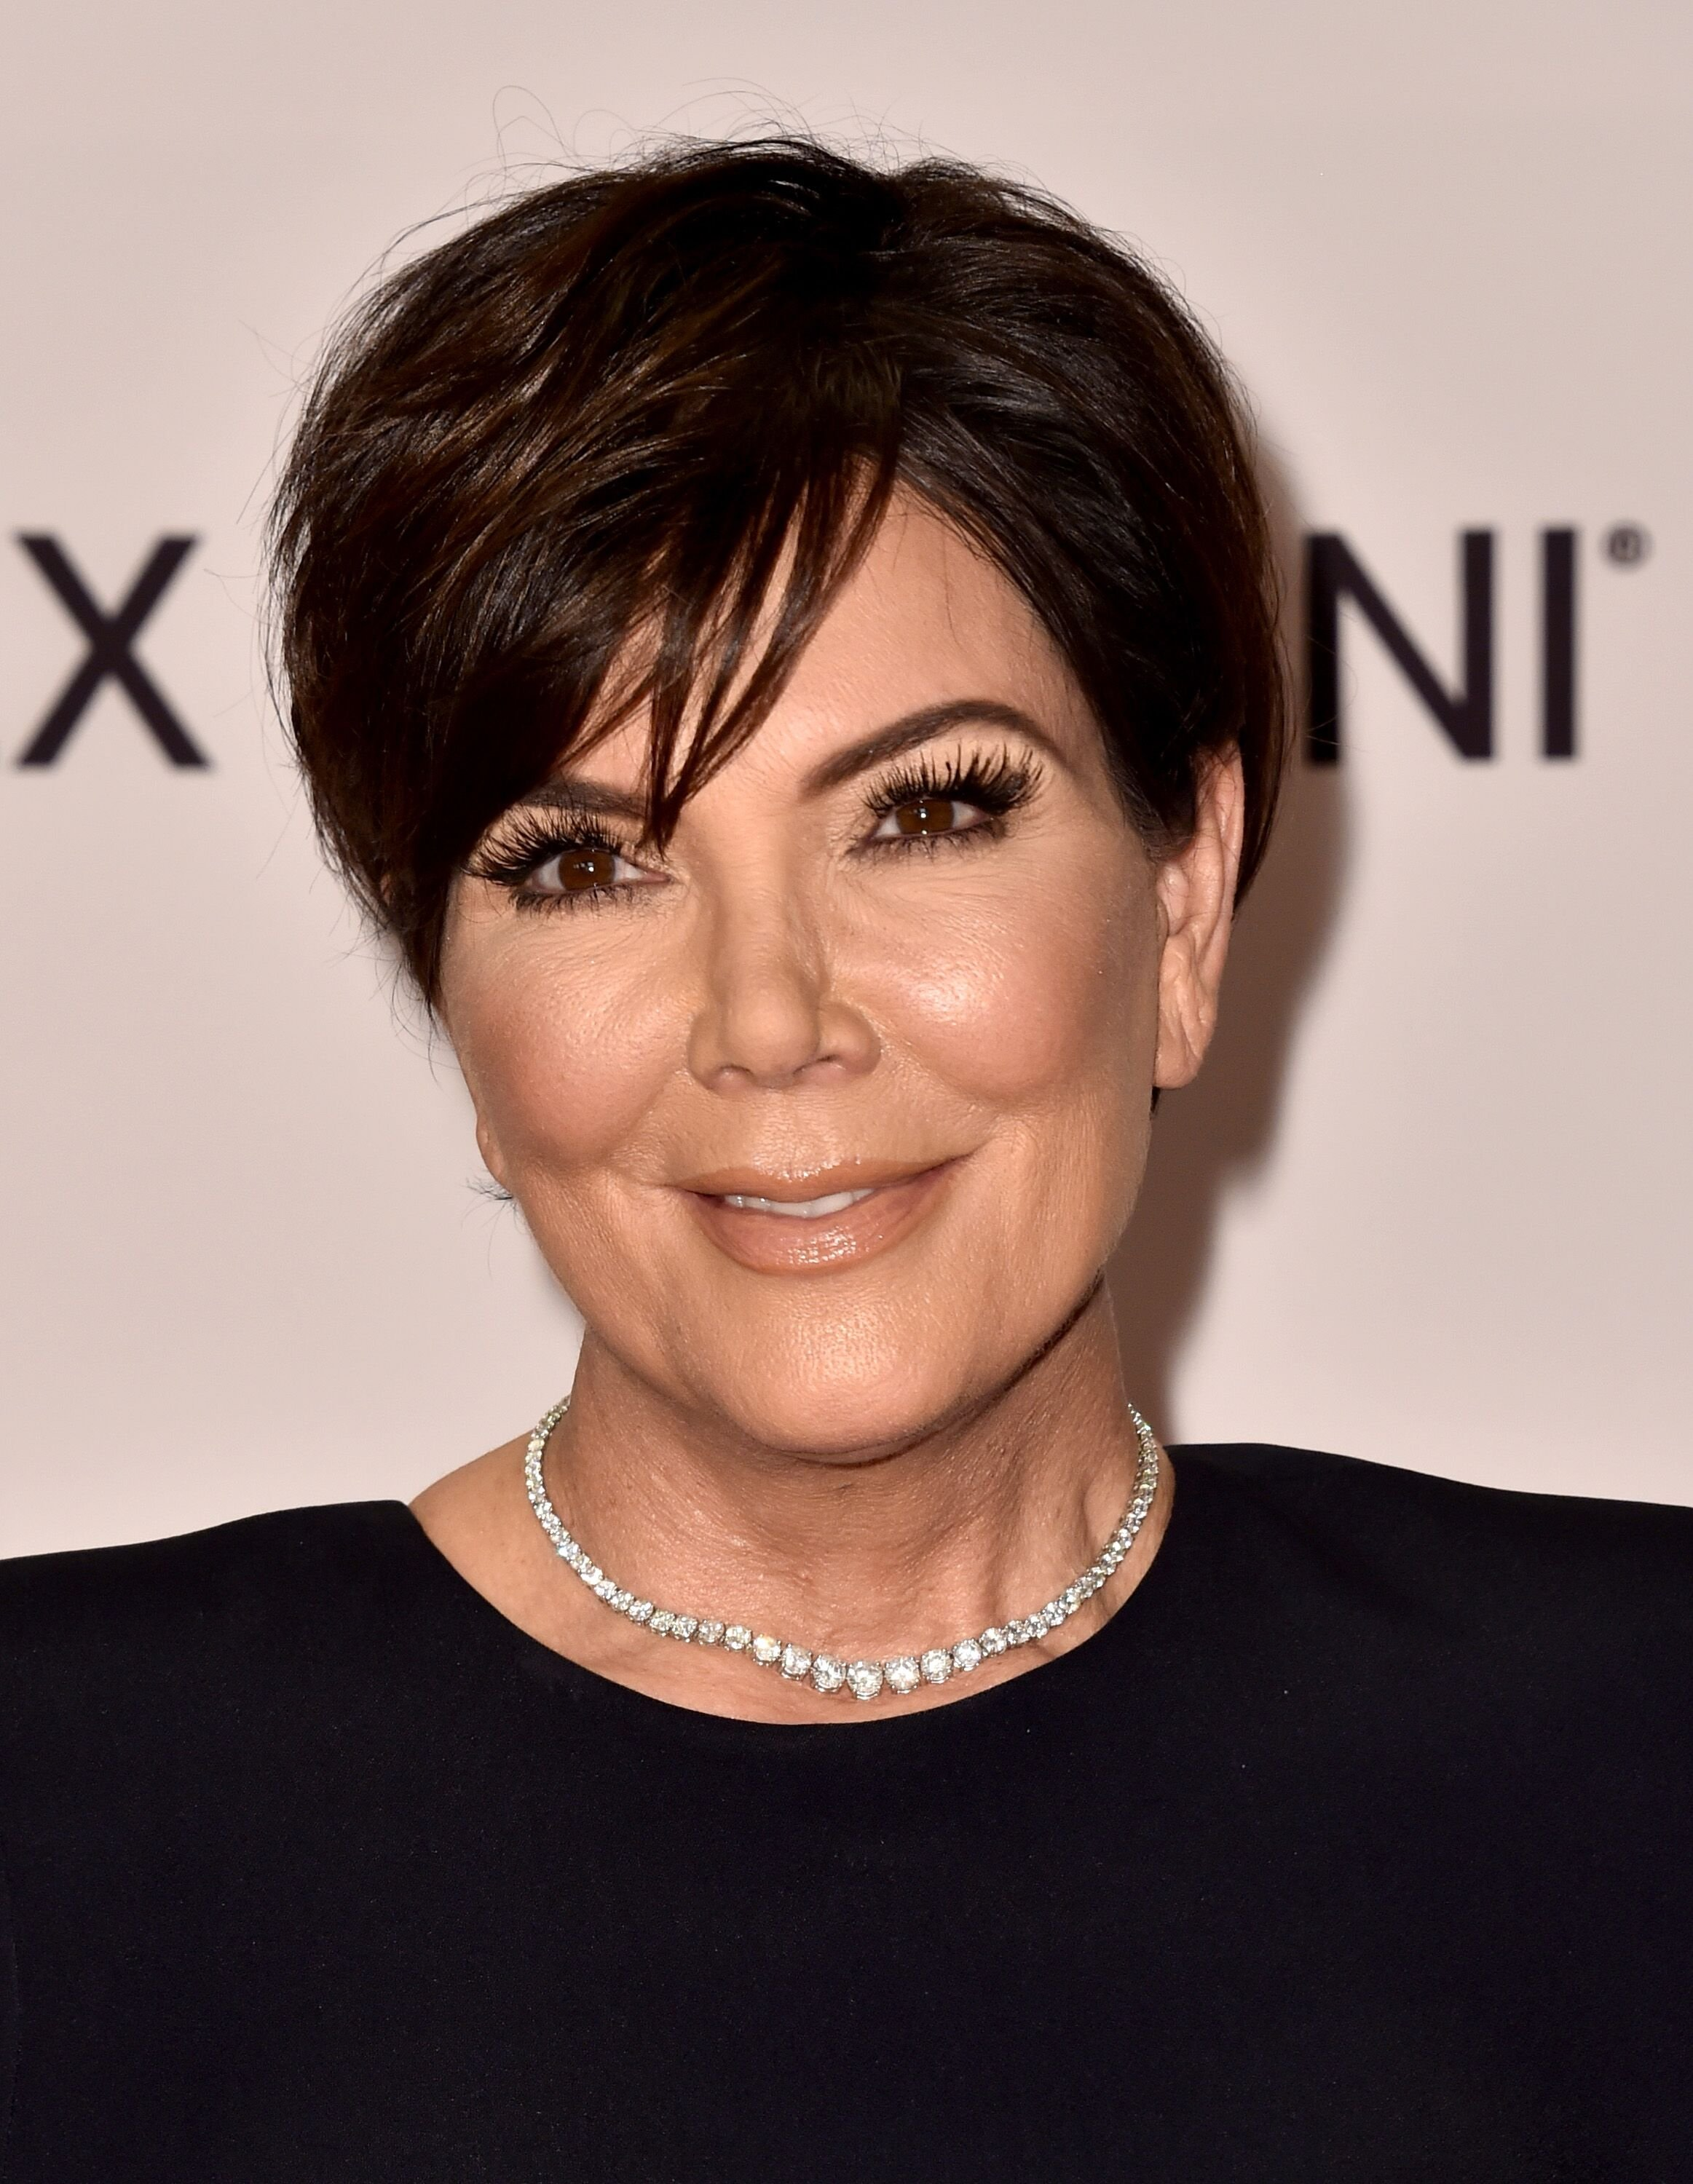 Kris Jenner attends the 24th Annual Race To Erase MS Gala at The Beverly Hilton Hotel on May 5, 2017. | Photo: Getty Images